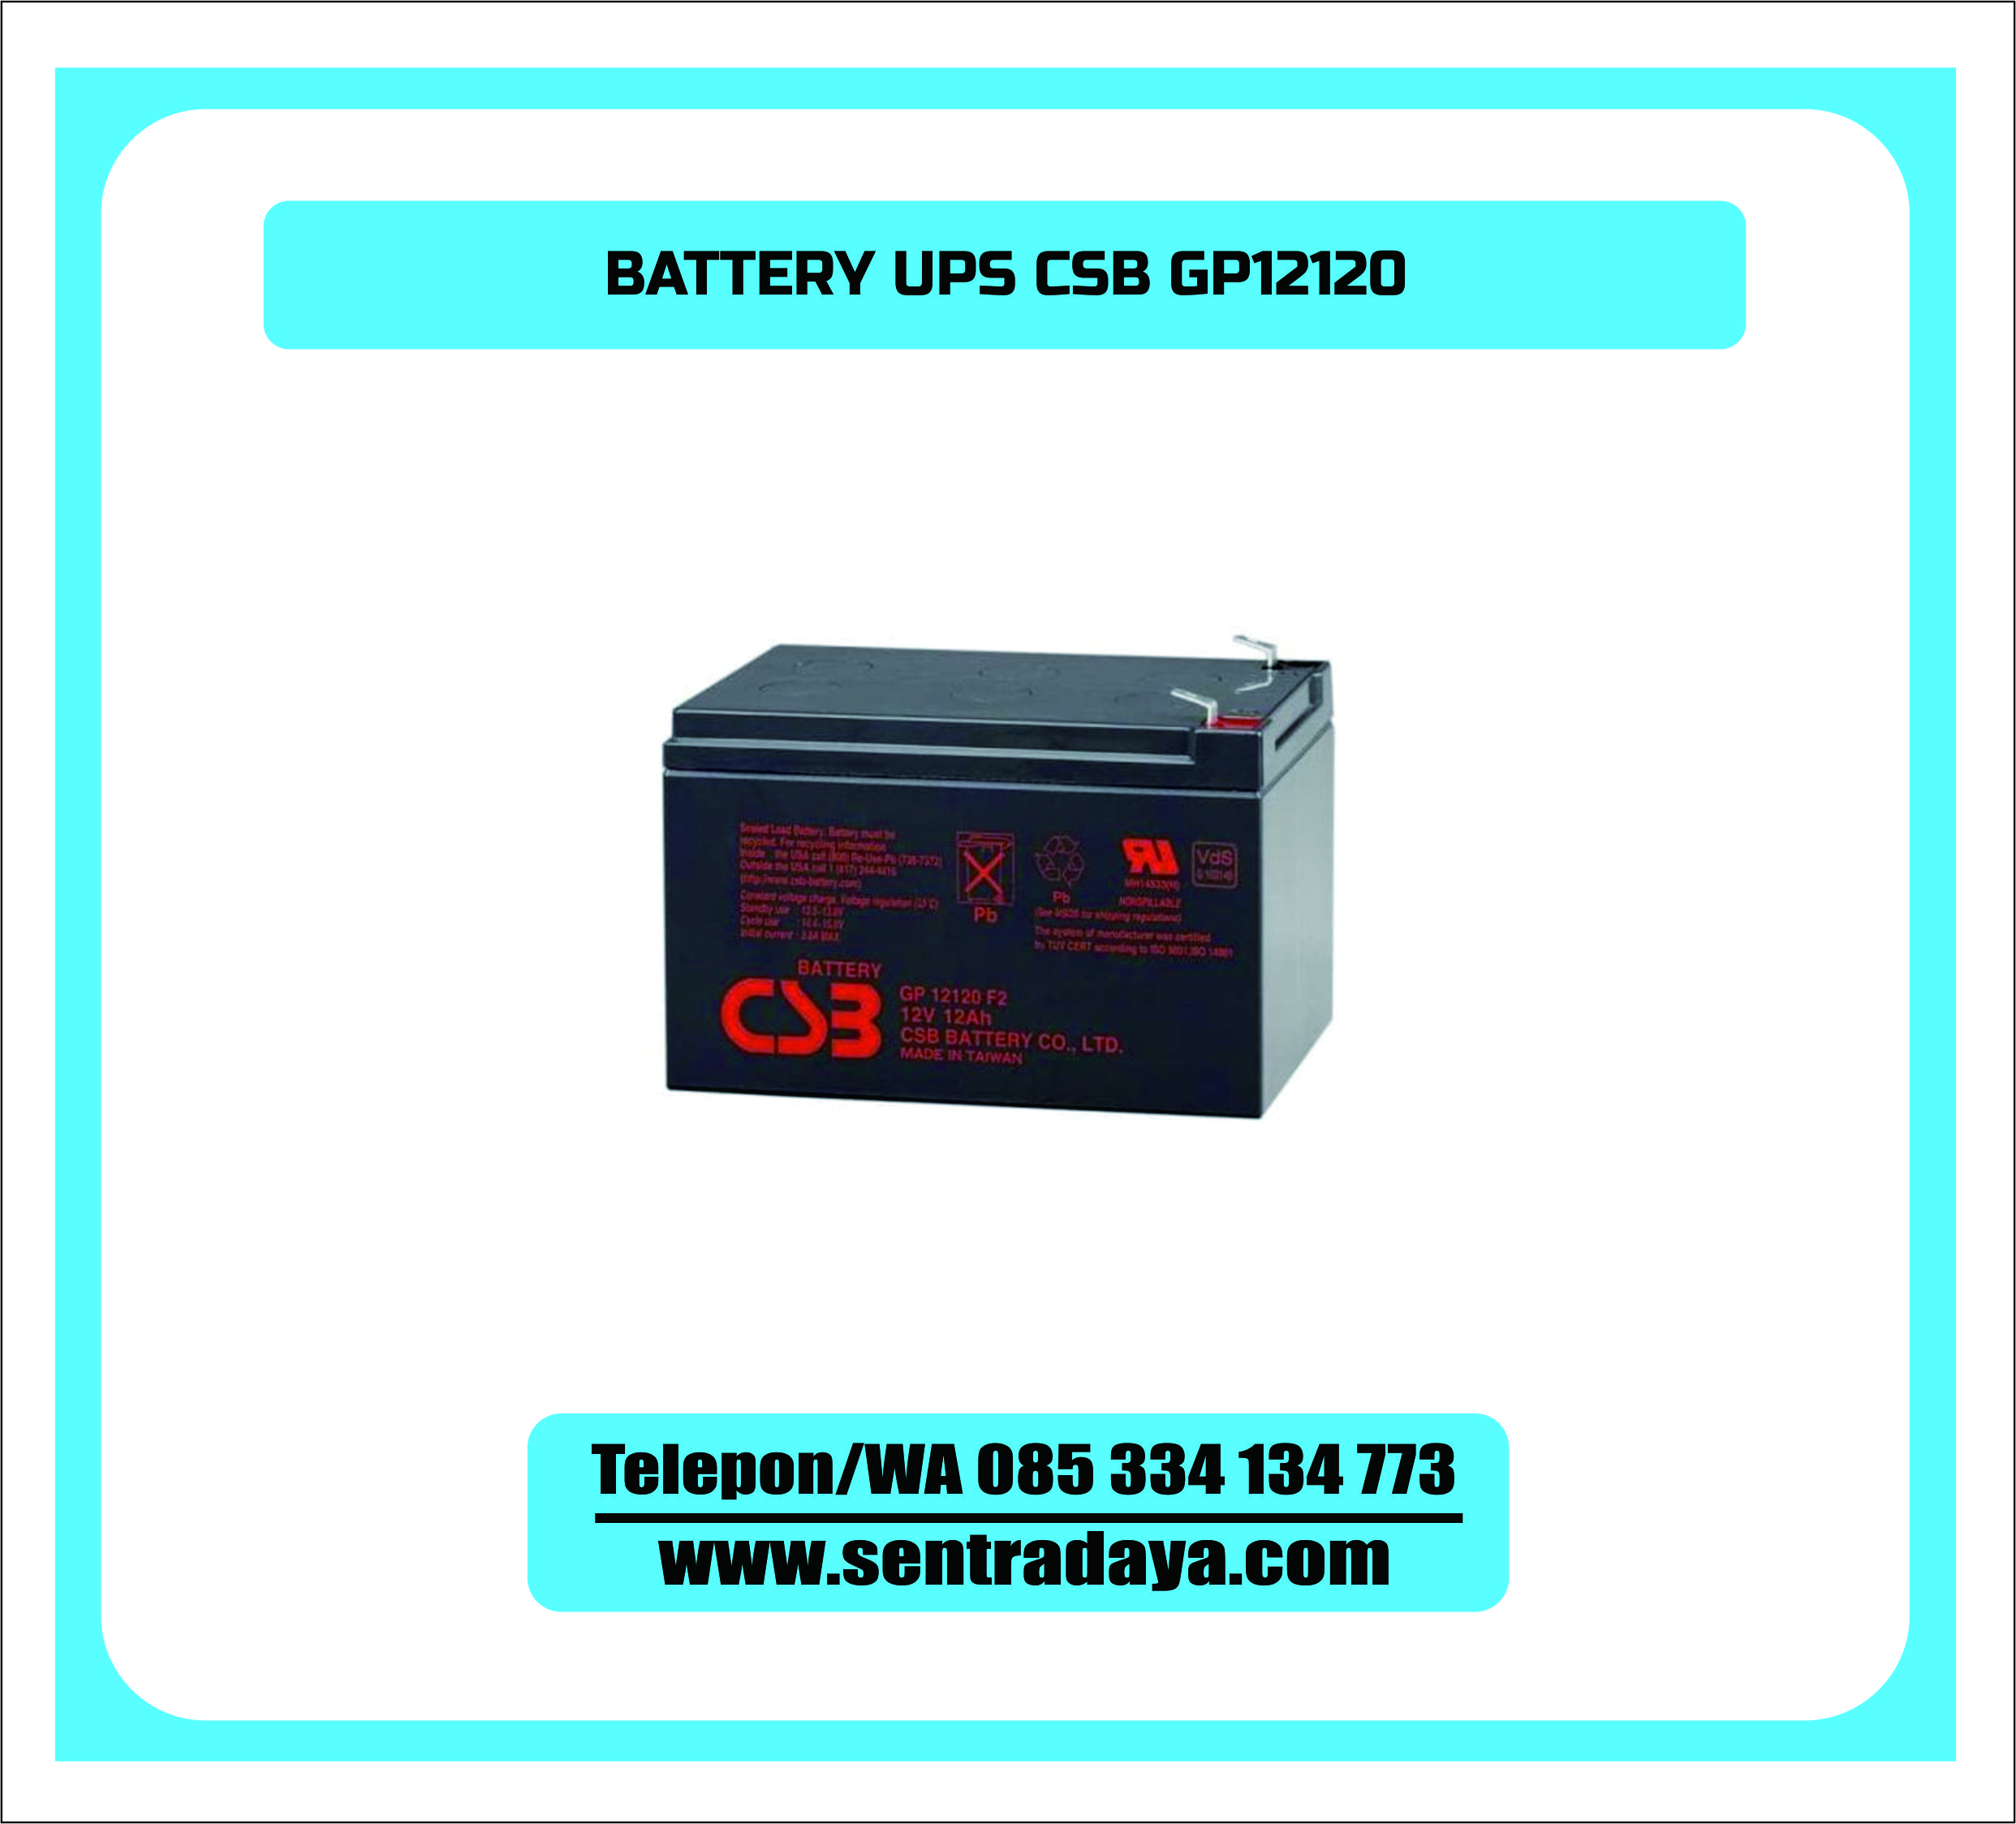 BATTERY UPS CSB GP12120 | BATTERY VRLA AGM CSB 12V 12 AH